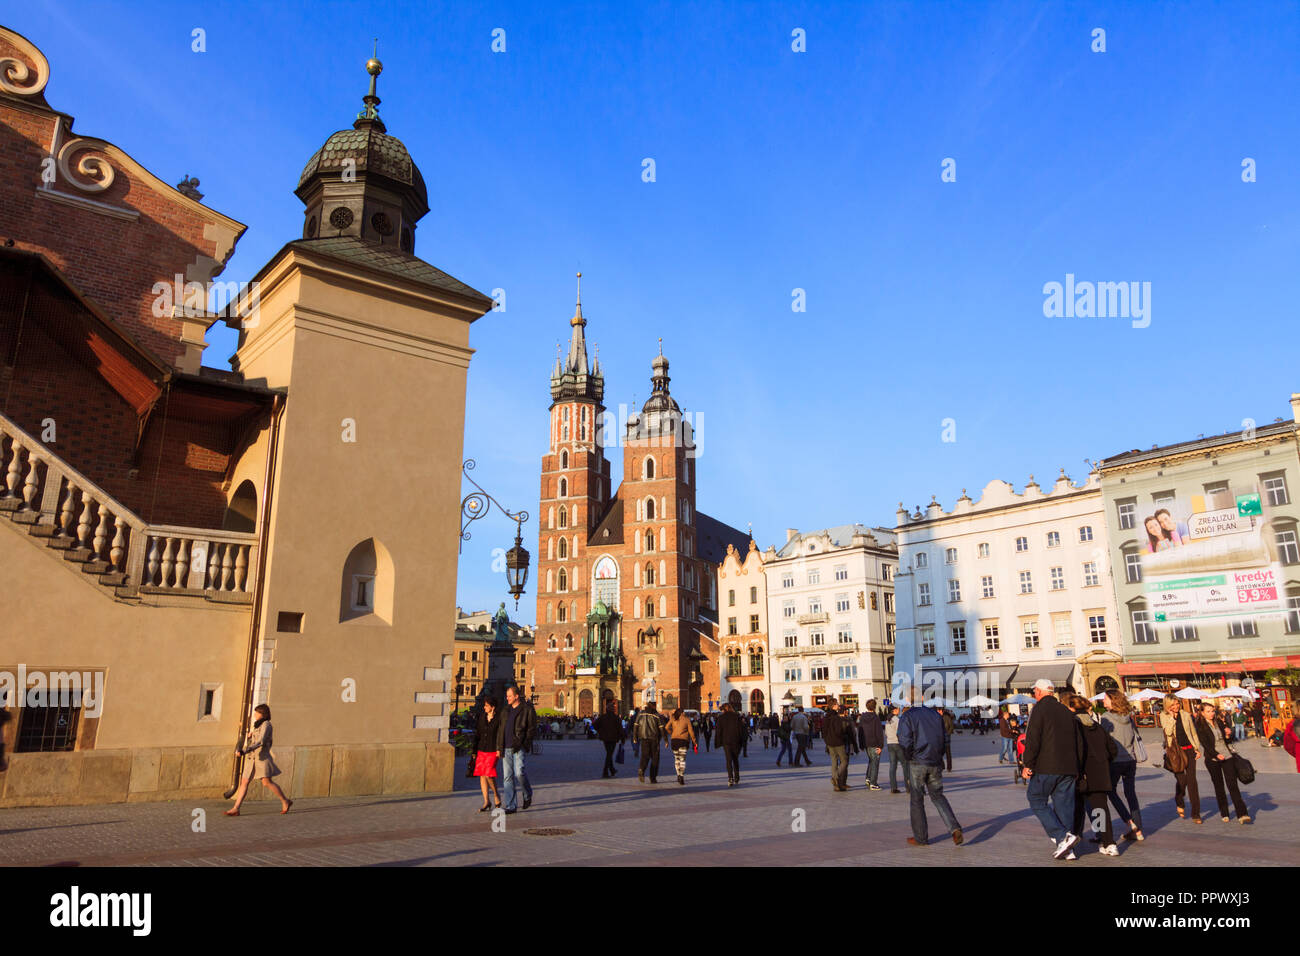 Krakow, Poland : People walk past the Cloth Hall and St. Mary's Basilica Church of Our Lady Assumed into Heaven a 14th century Brick Gothic church at  - Stock Image